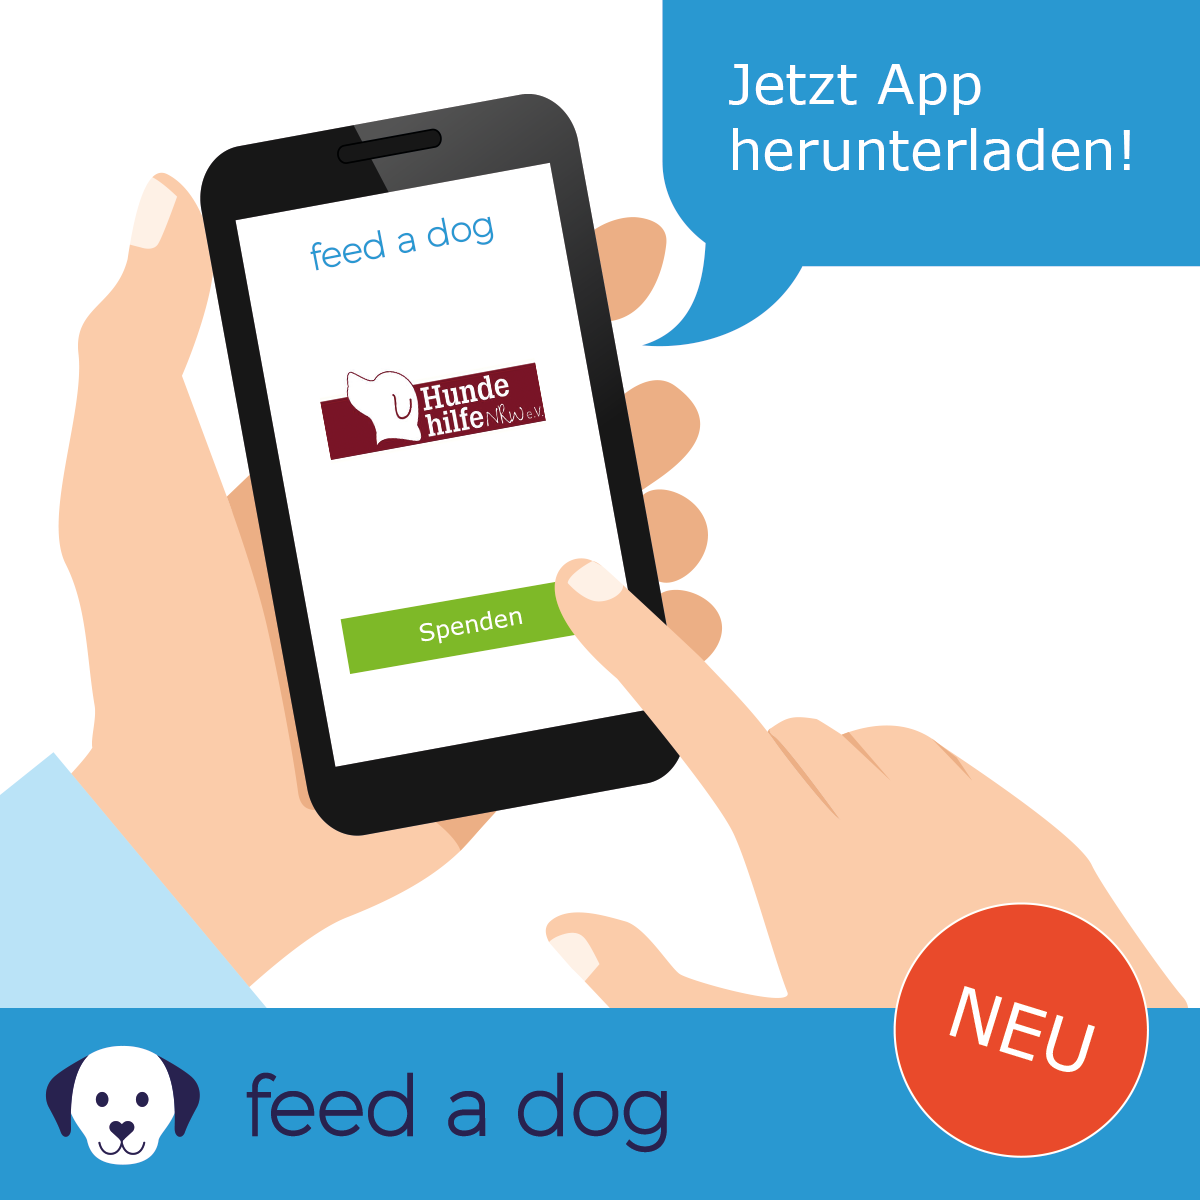 feed a dog HundeHilfeNRW Smartphone gross